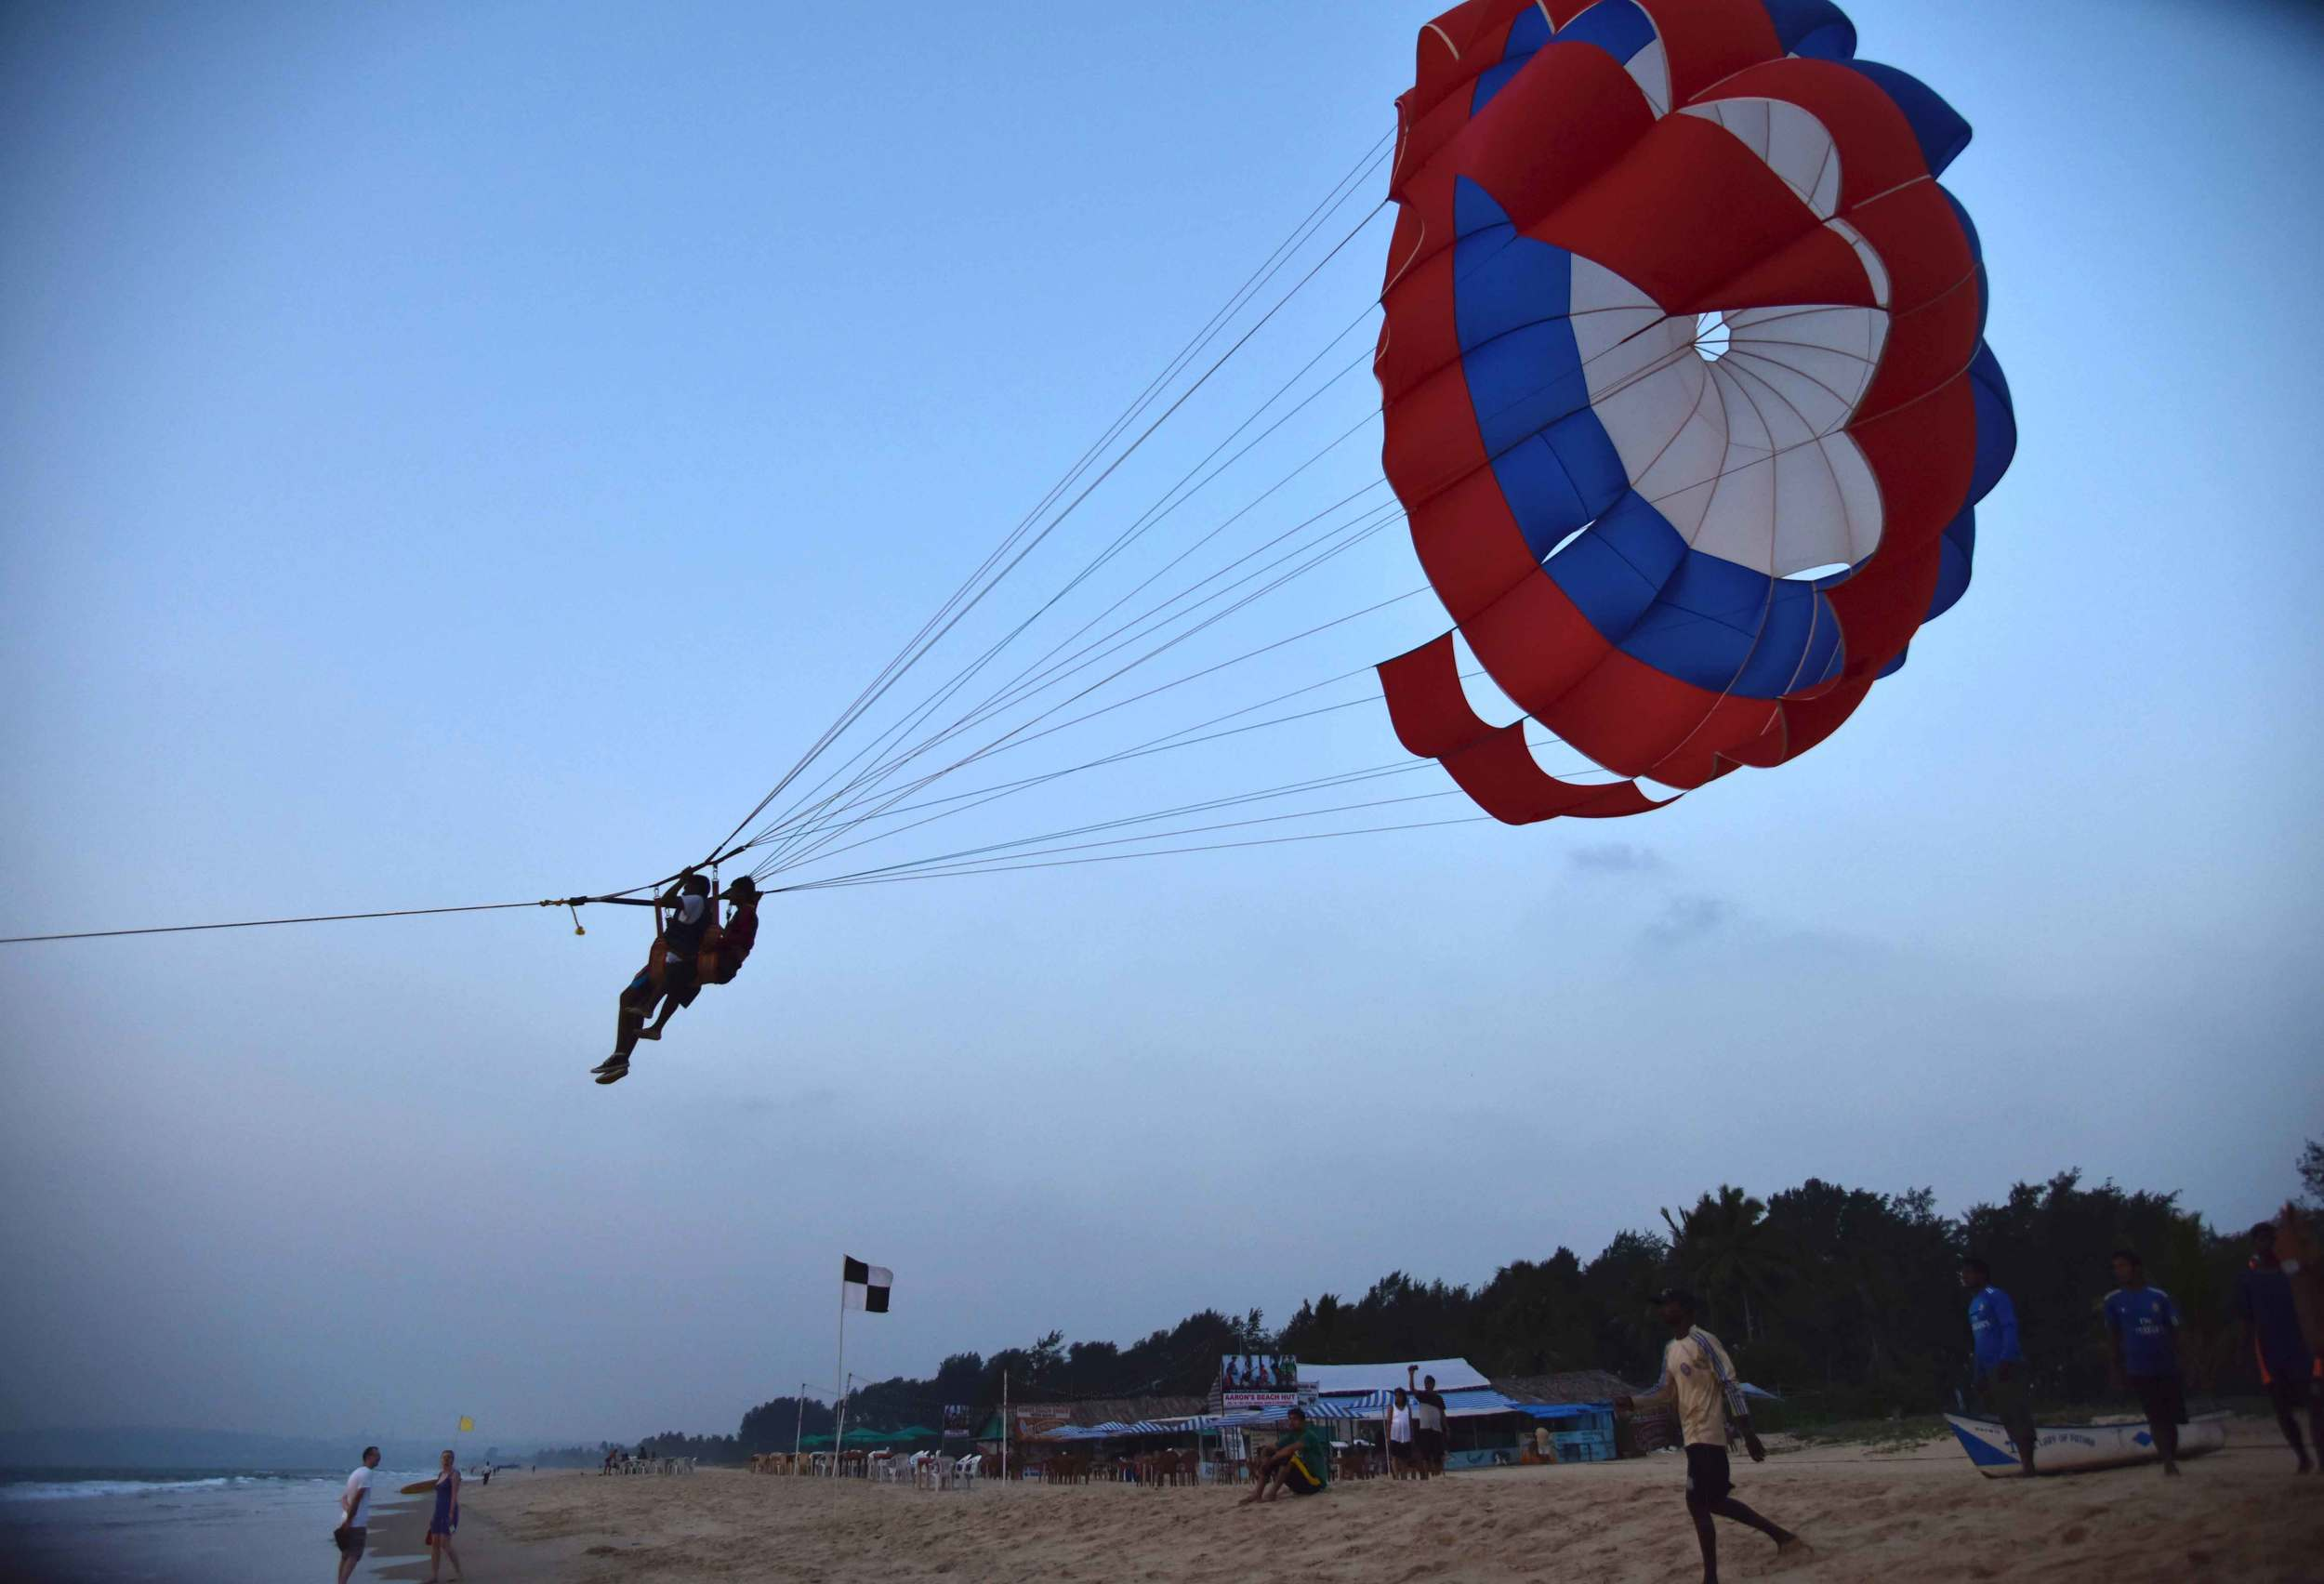 Paragliding on the beach at the Park Hyatt Hotel, Goa, image©sourcingstyle.com.